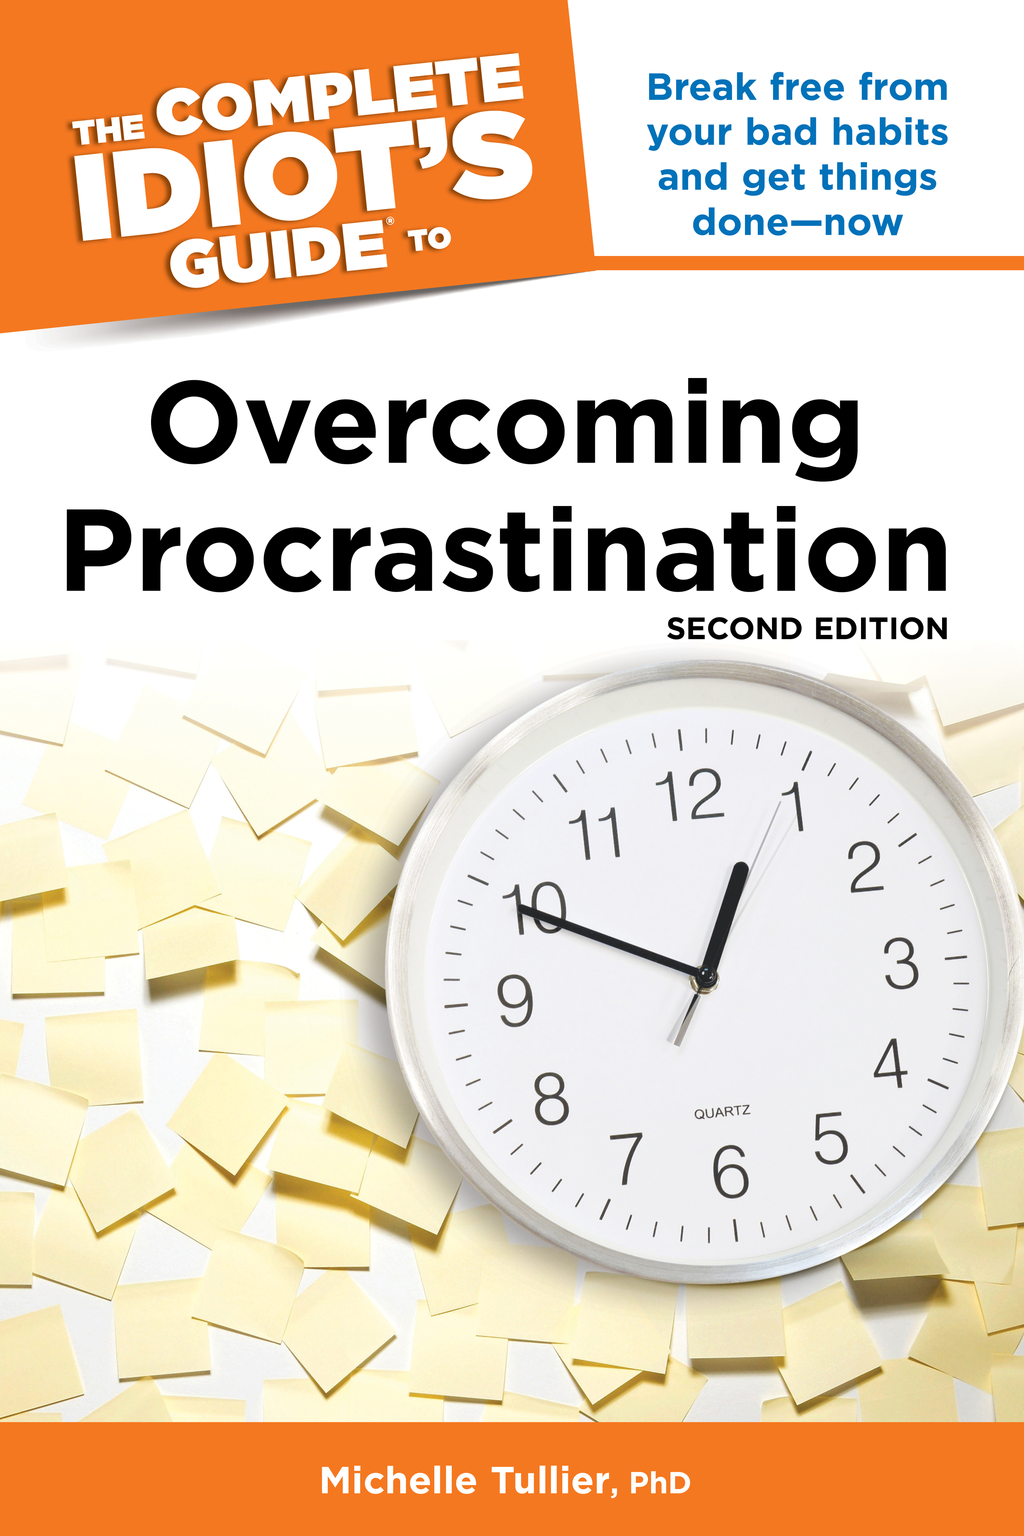 The Complete Idiot's Guide to Overcoming Procrastination, 2E